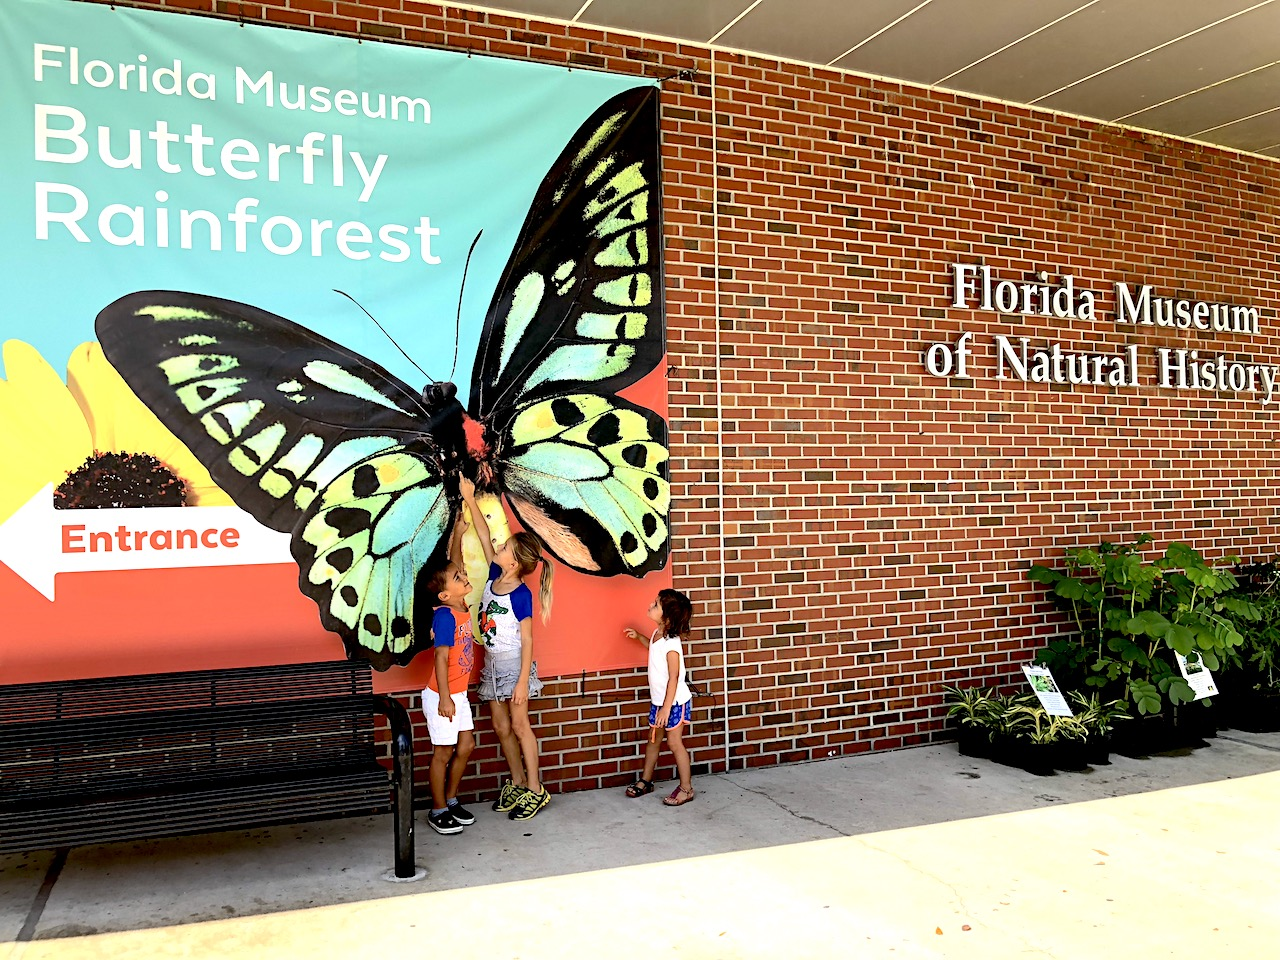 Florida Museum of Natural History. 2-day itinerary for families in Gainesville, FL #gainesville #florida #tourofflorida #alachuacounty #gainesvilleFL #universityofflorida #UF #gogators #Gainesvillewithkids #gainesvilleitinerary